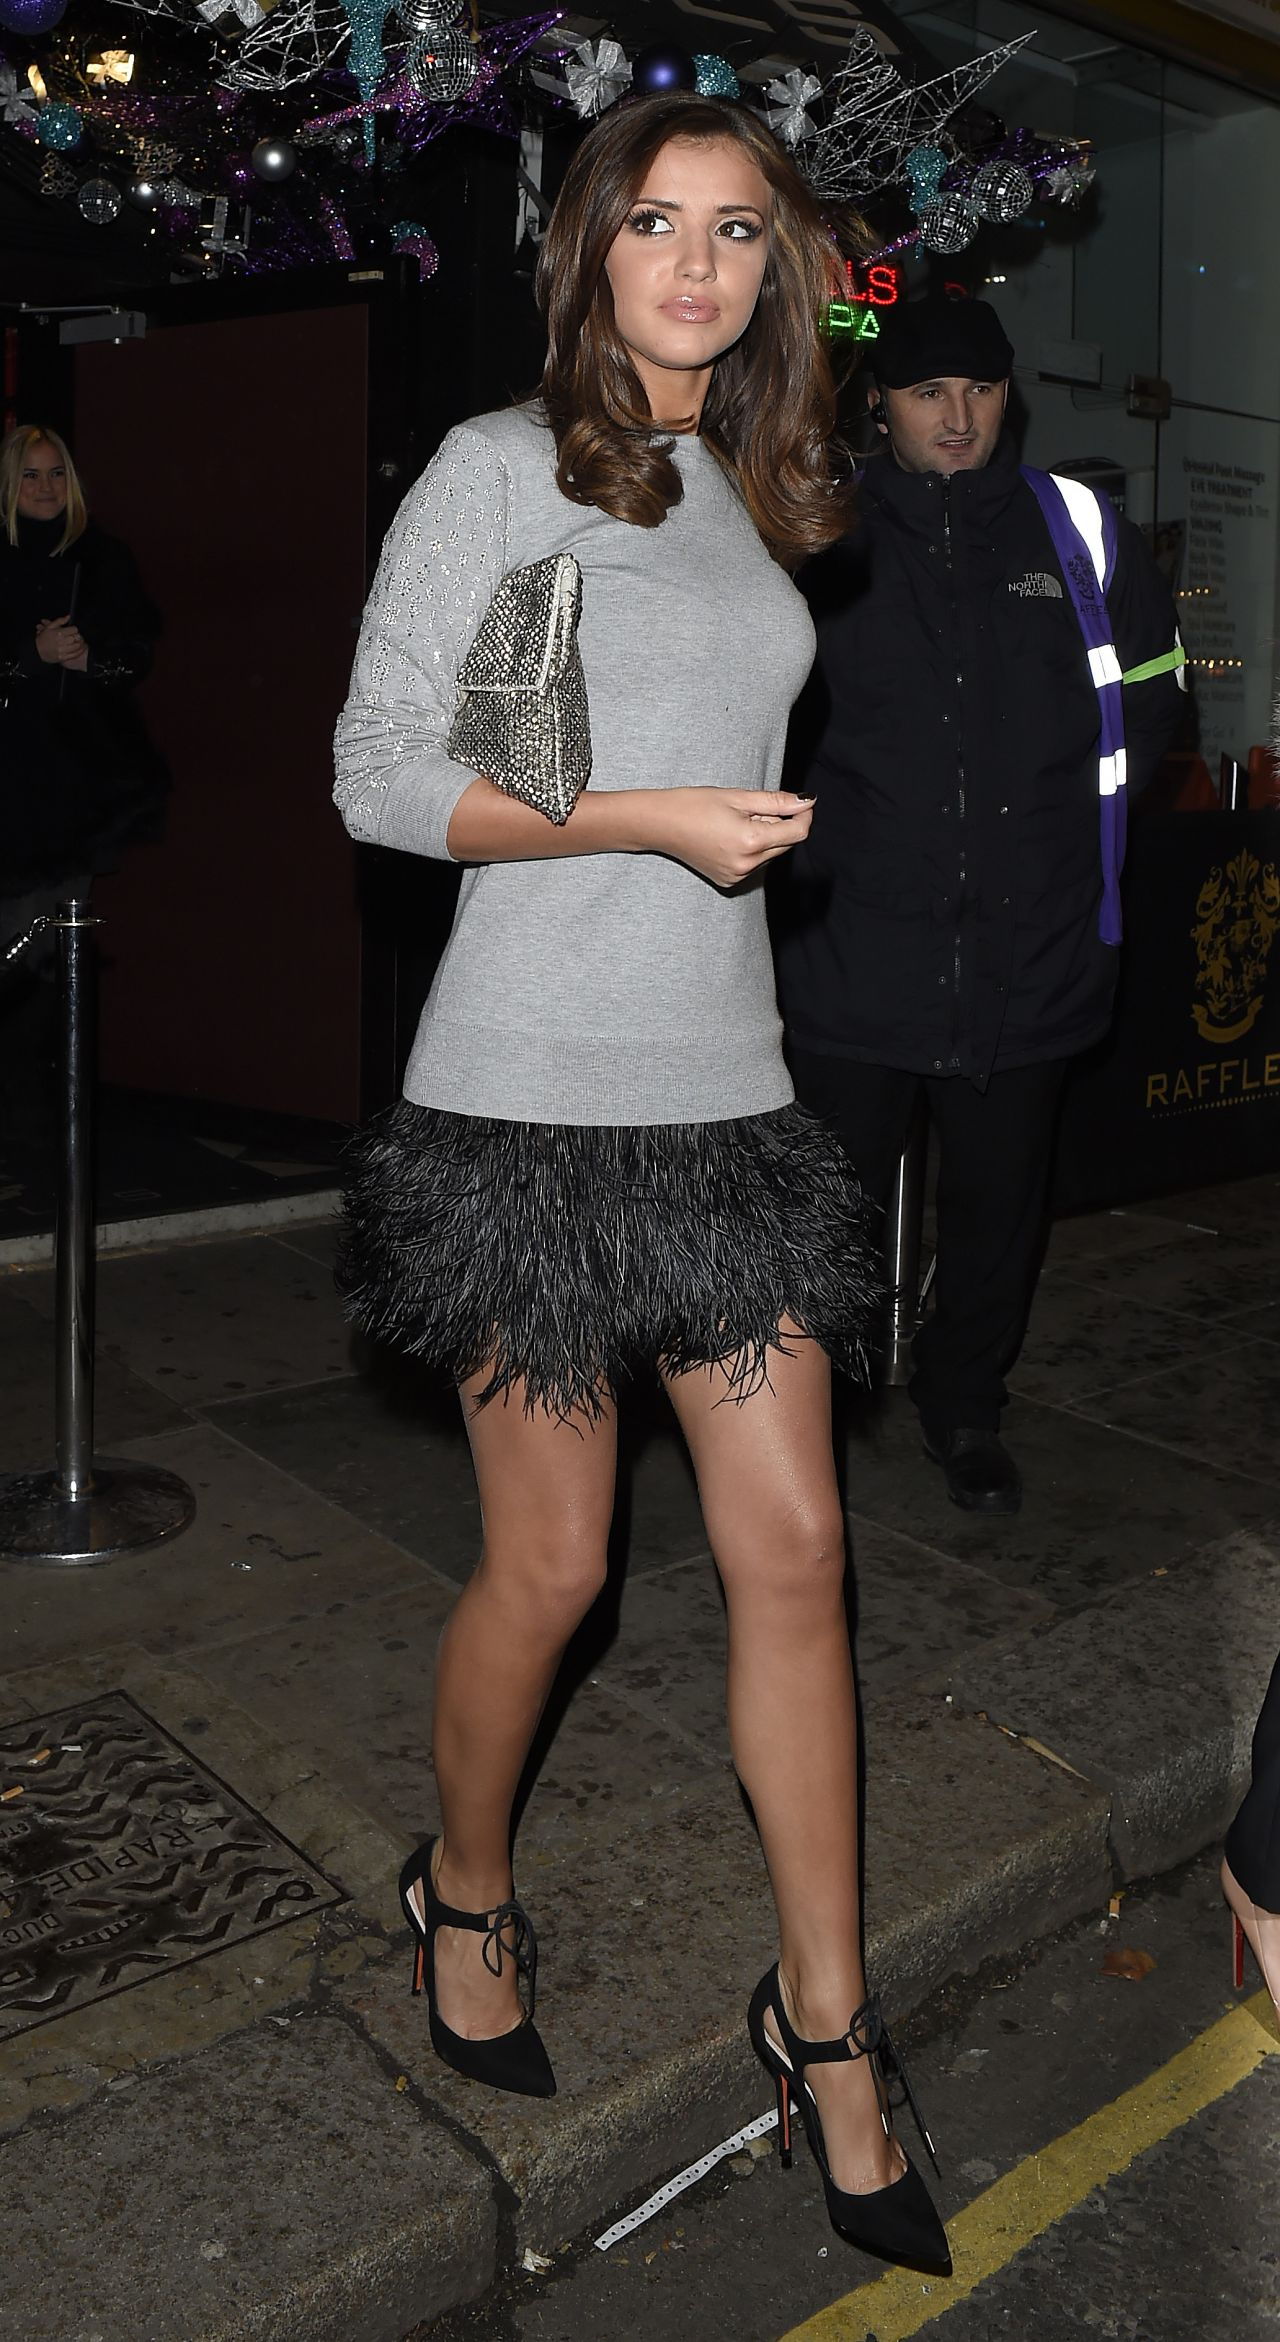 Lucy Mecklenburgh Night Out Style - Leaving Raffles Club in Chelsea - Dec. 2014